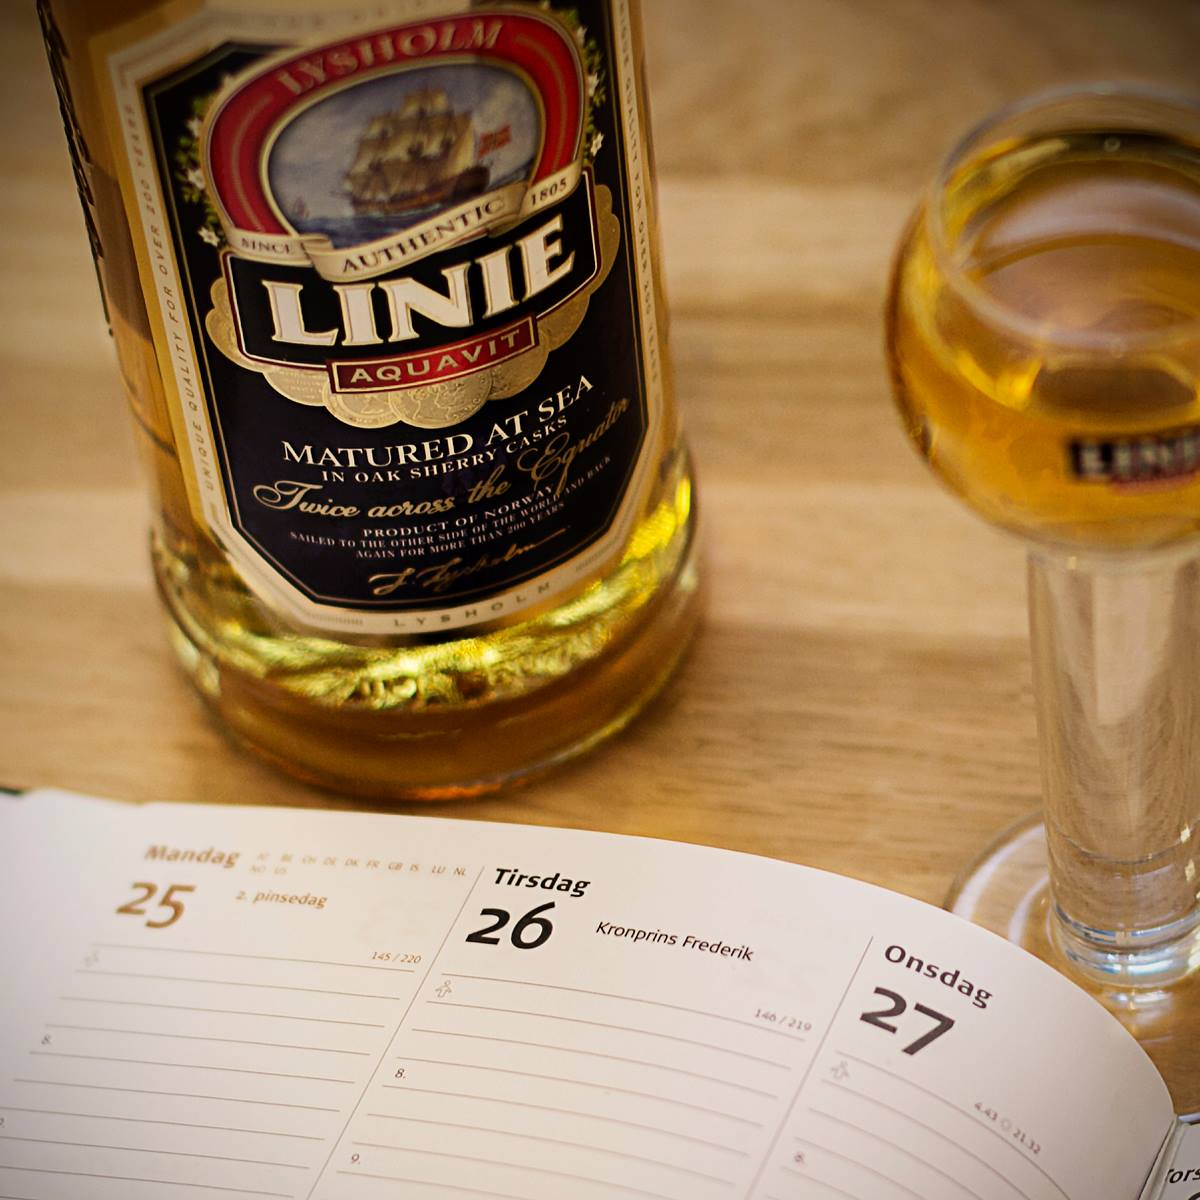 A bottle of Linie Aquavit that is matured at sea. (image courtesy of Linie Aquavit)